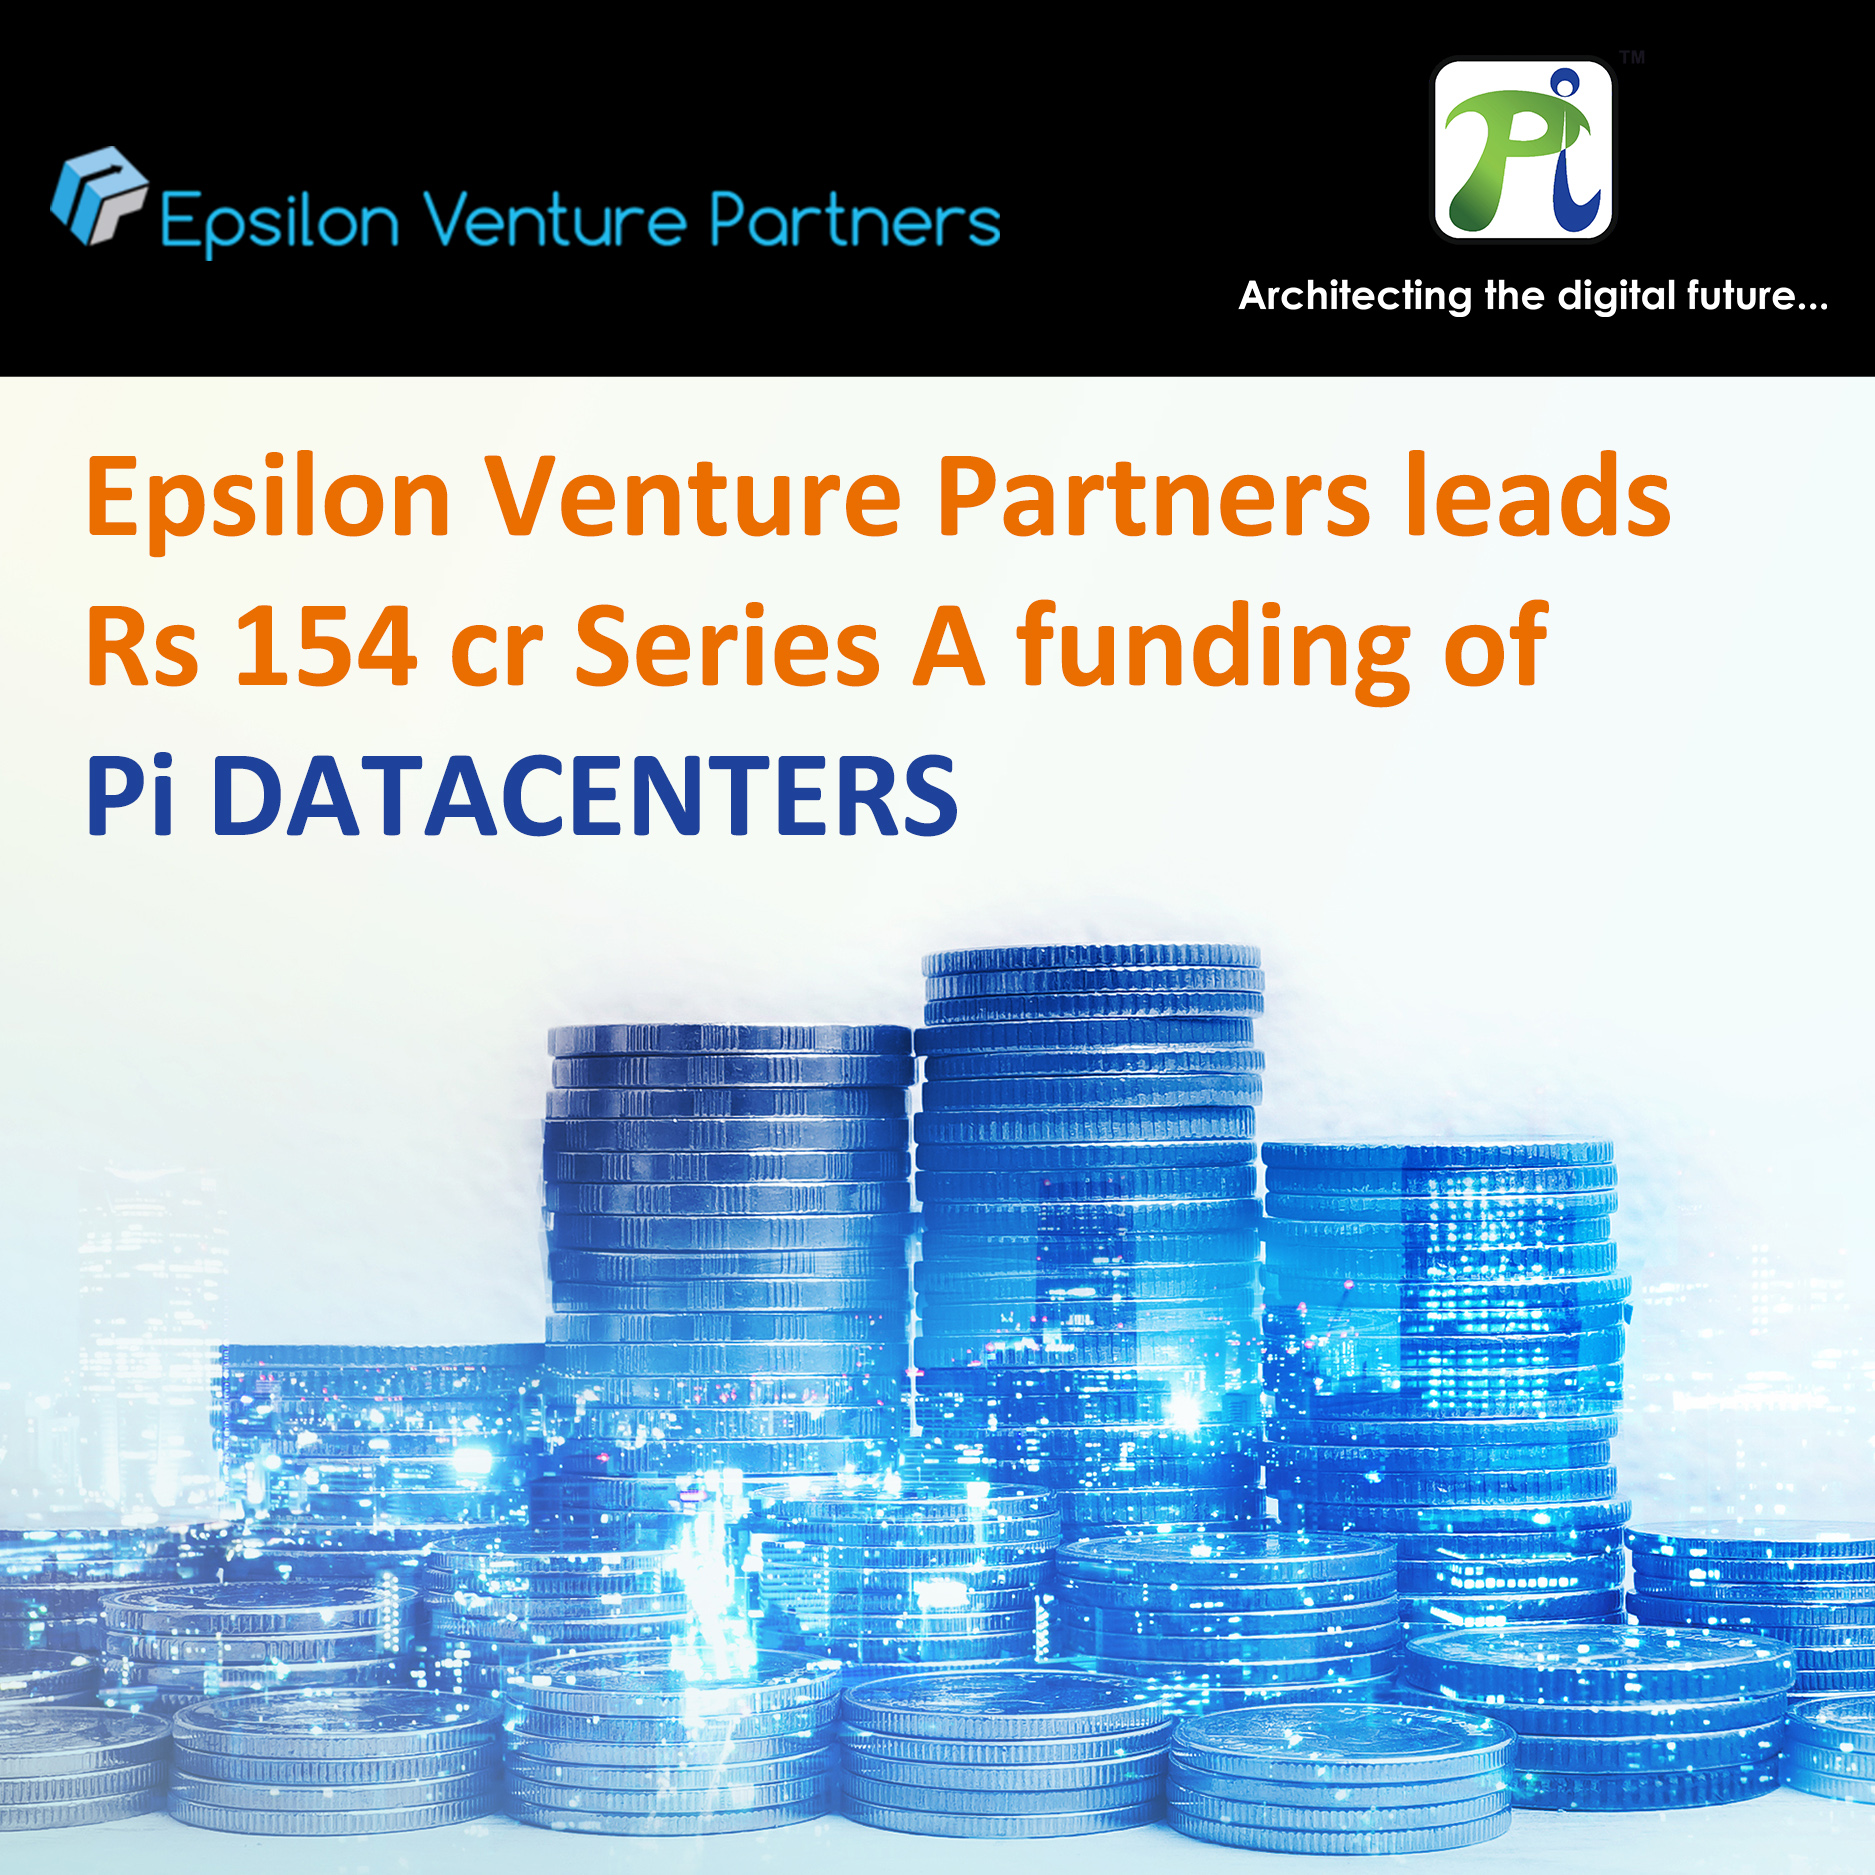 Epsilon Venture Partners leads Rs 154 cr Series A funding of Pi DATACENTERS